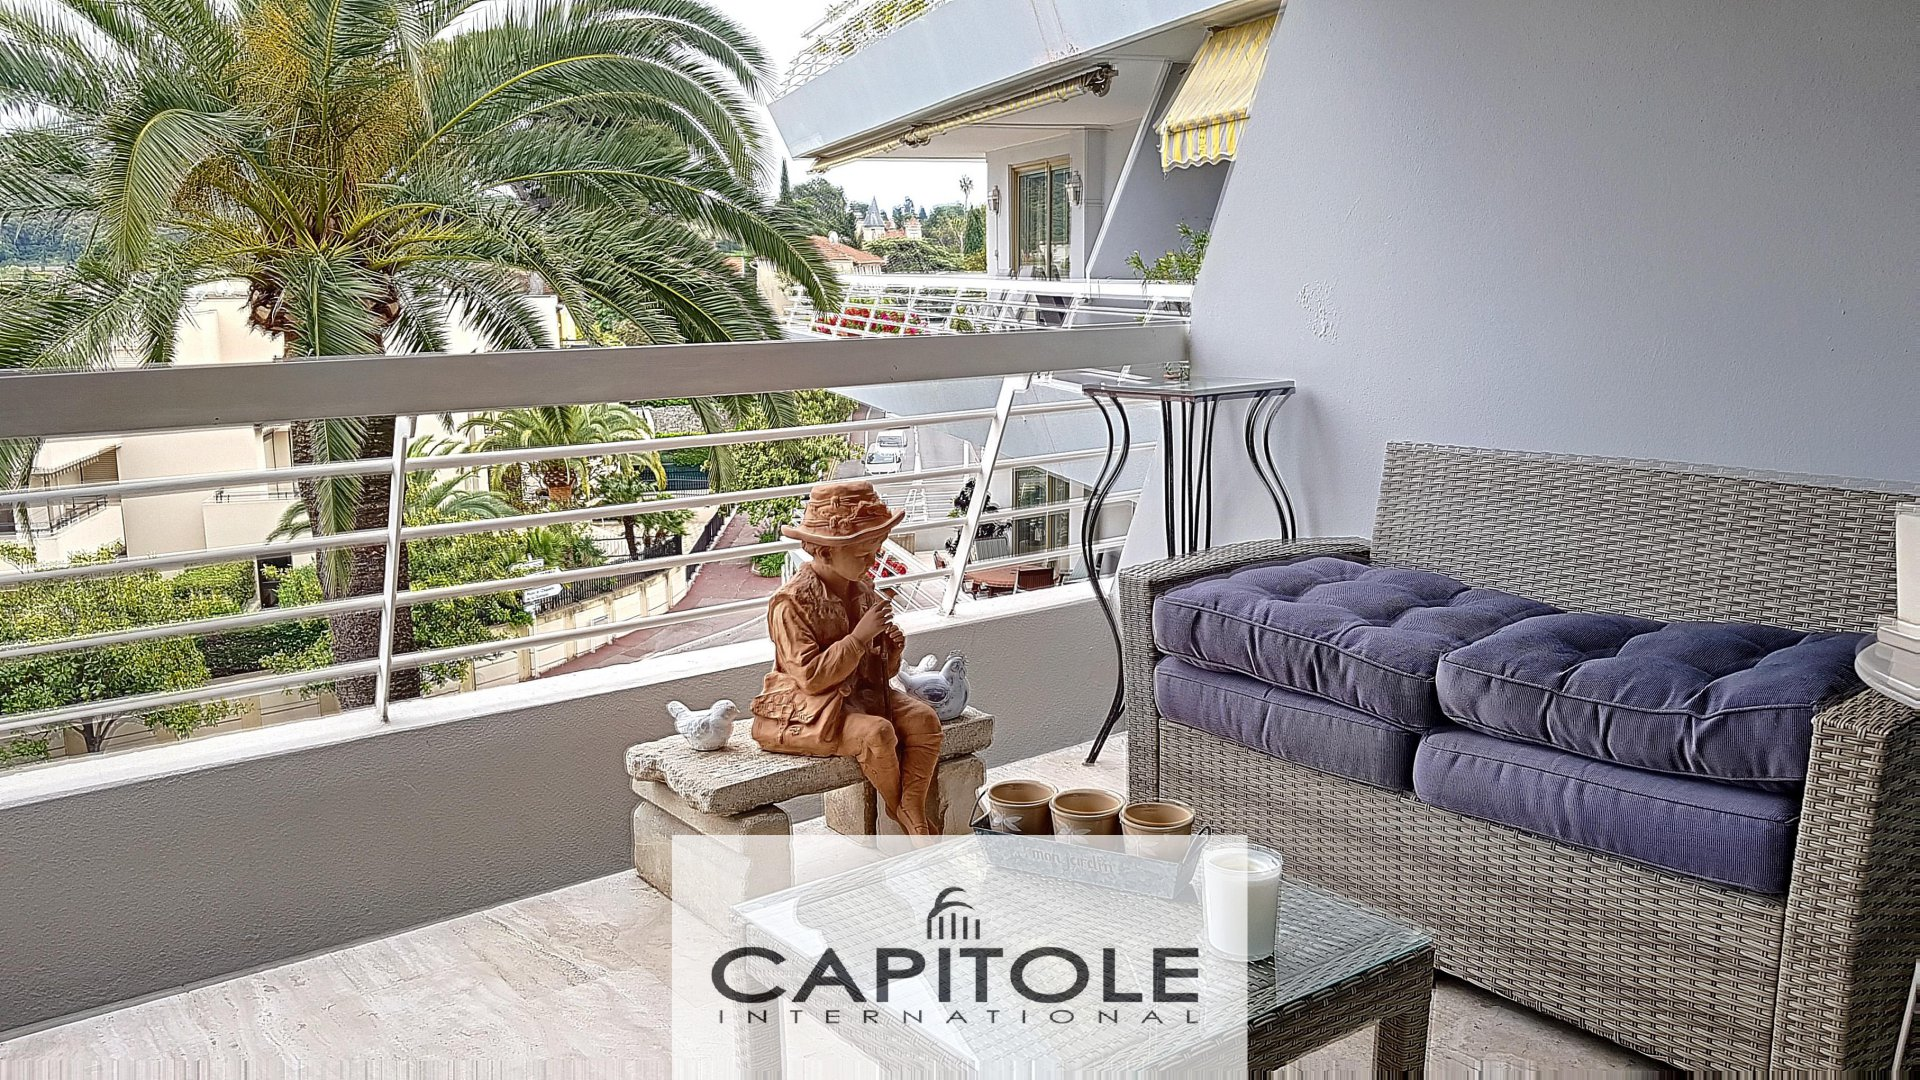 For sale, SOLE AGENT PROPERTY Antibes Ilette, 2 bedroom dual aspect apartment, large terrace, large garage